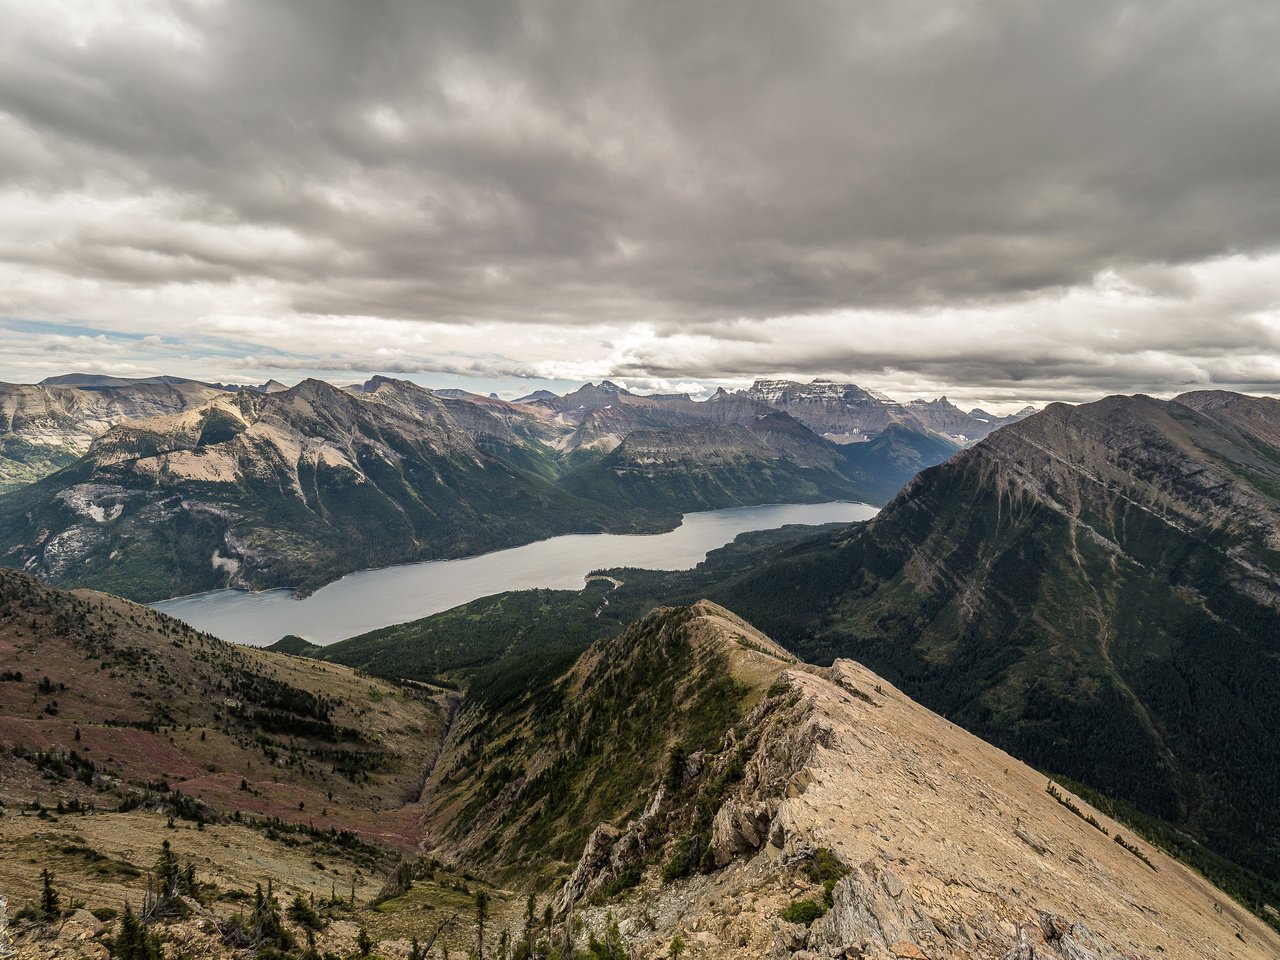 Looking down the SE ridge towards the Upper Waterton Lake with Boswell and Cleveland in the distance.